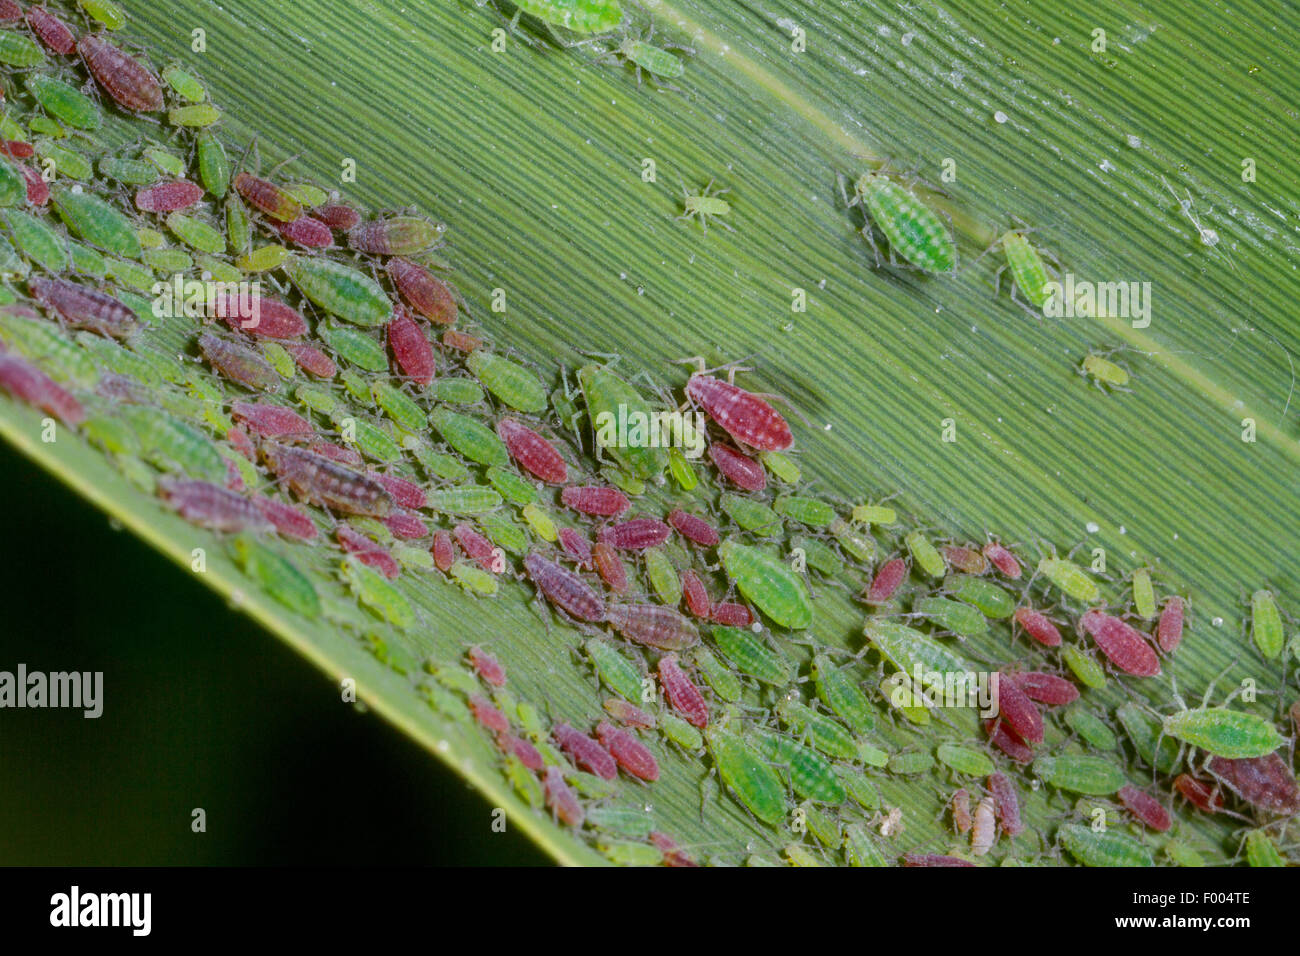 damson-hop aphid, hop aphid (Hyalopterus pruni), colony on a reed leaf, Germany, Bavaria, Isental - Stock Image